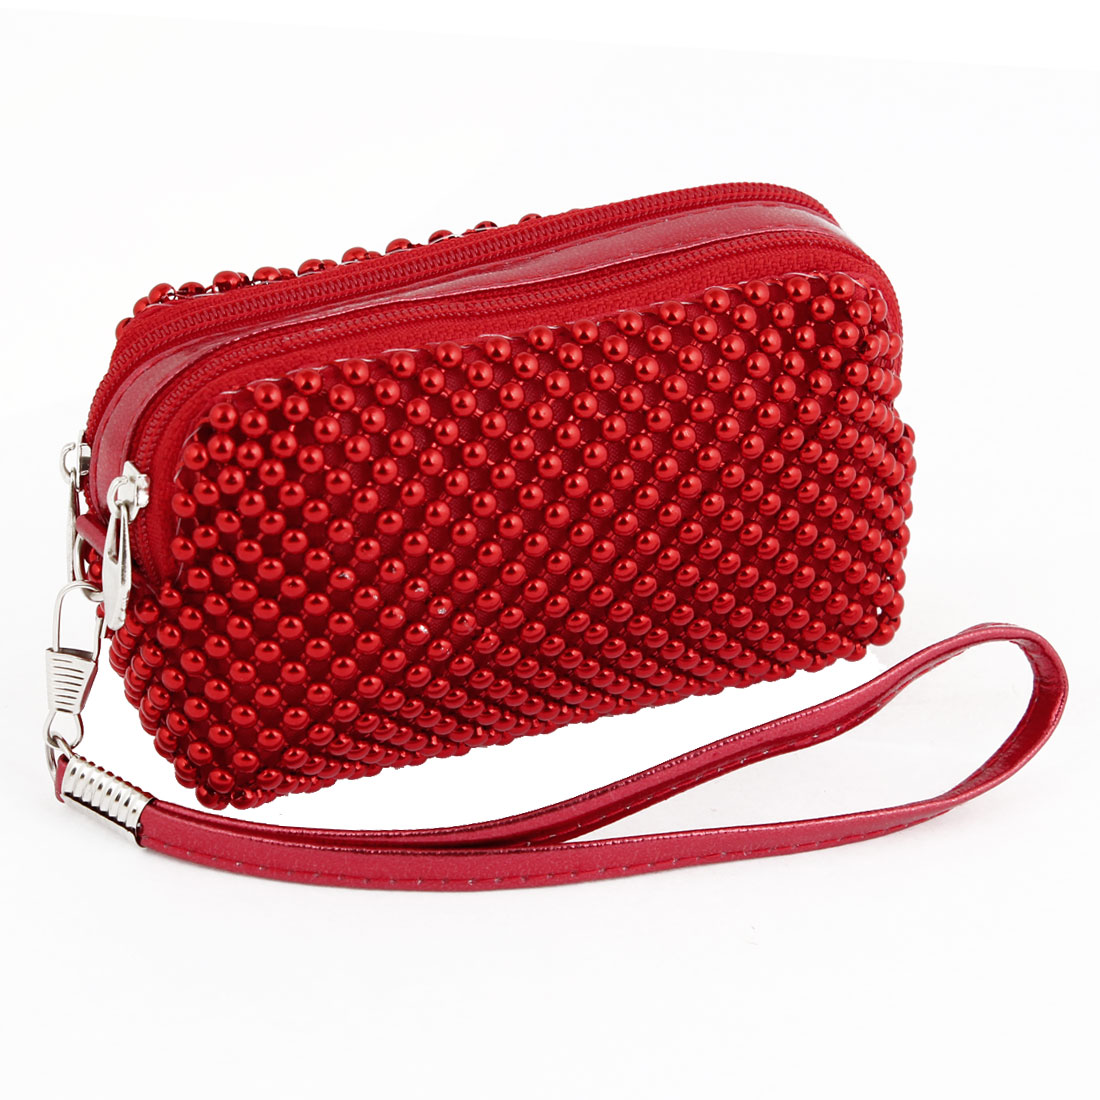 Red Beads Decor Zipper Closure 2 Compartments Coin Purse Bag for Lady